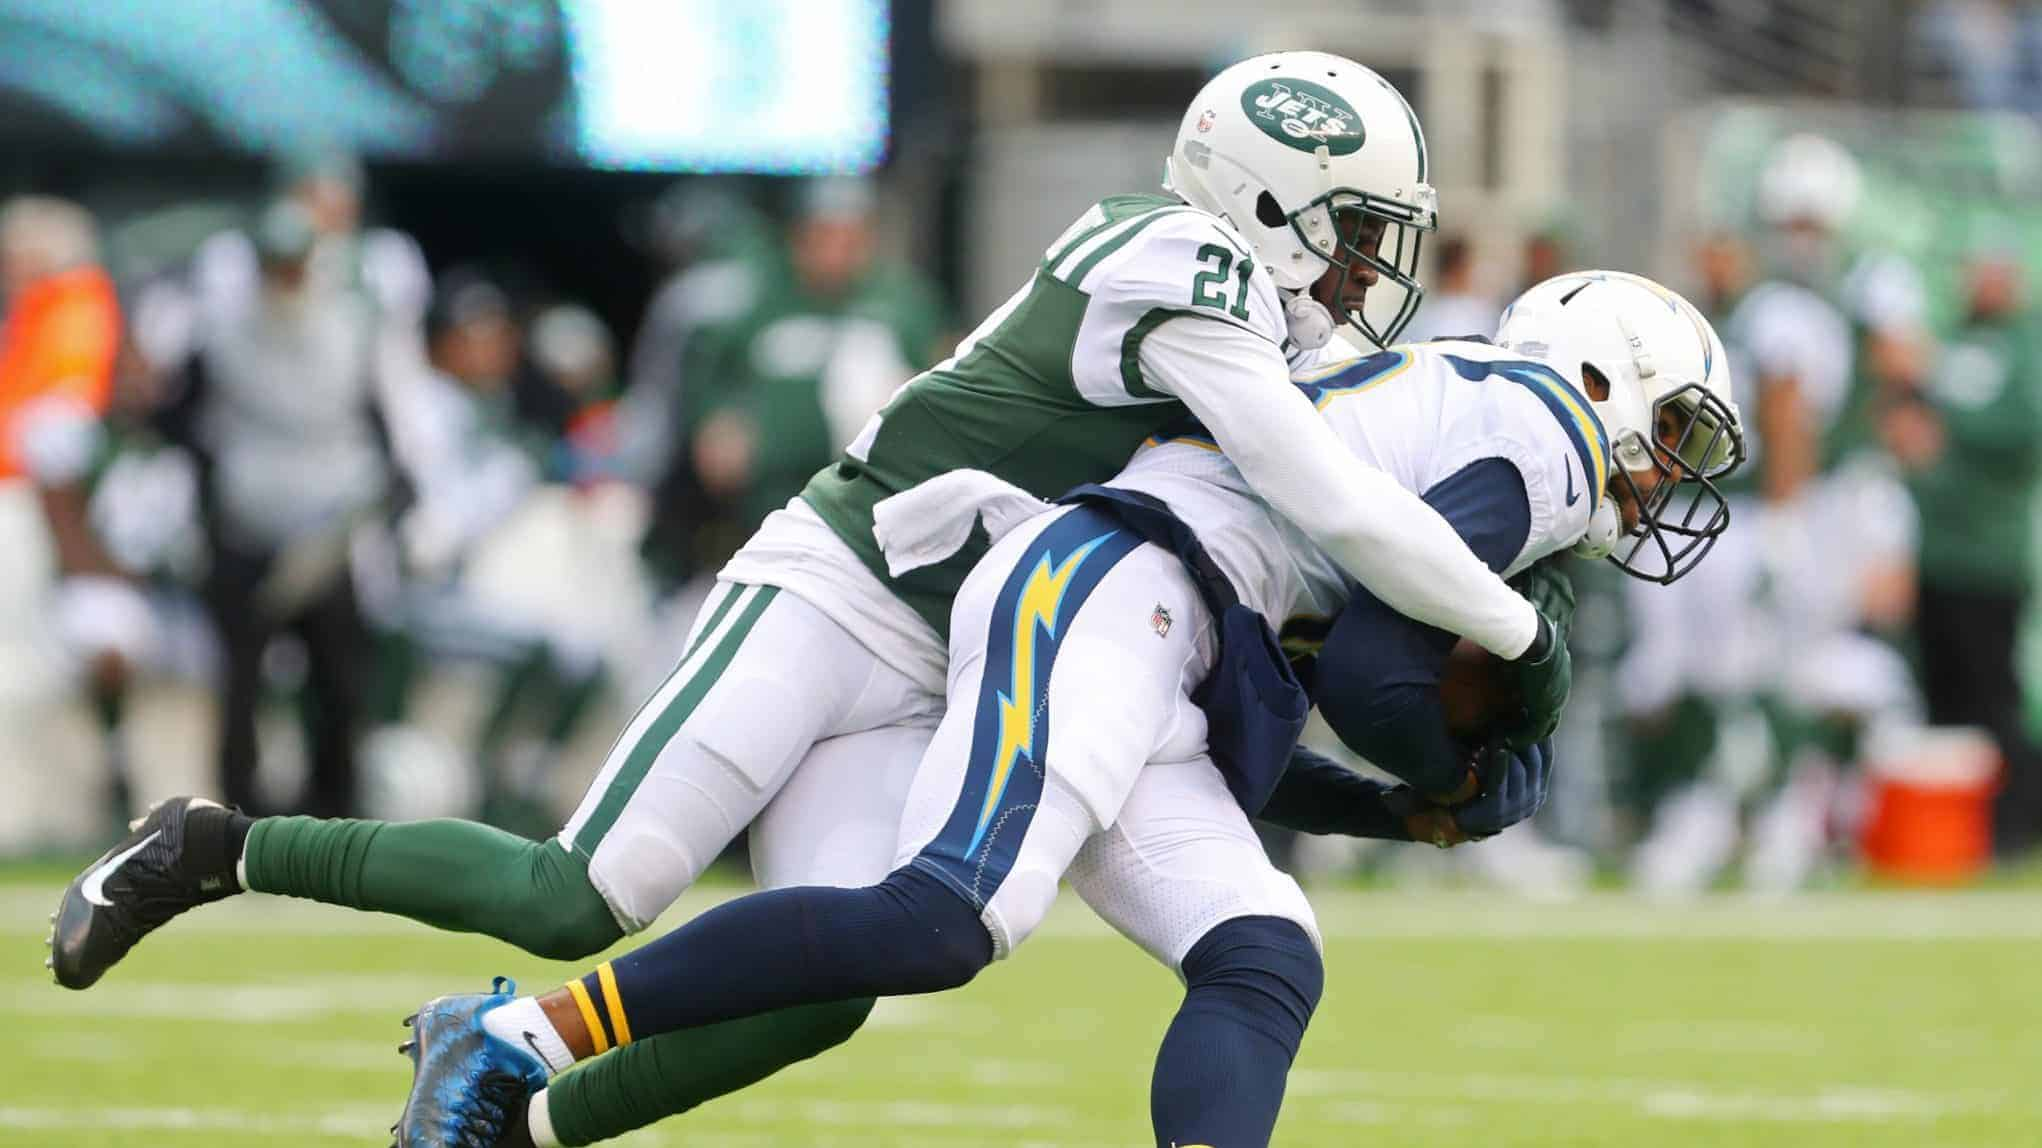 Los-angeles-chargers-v-new-york-jets-e1528220201556